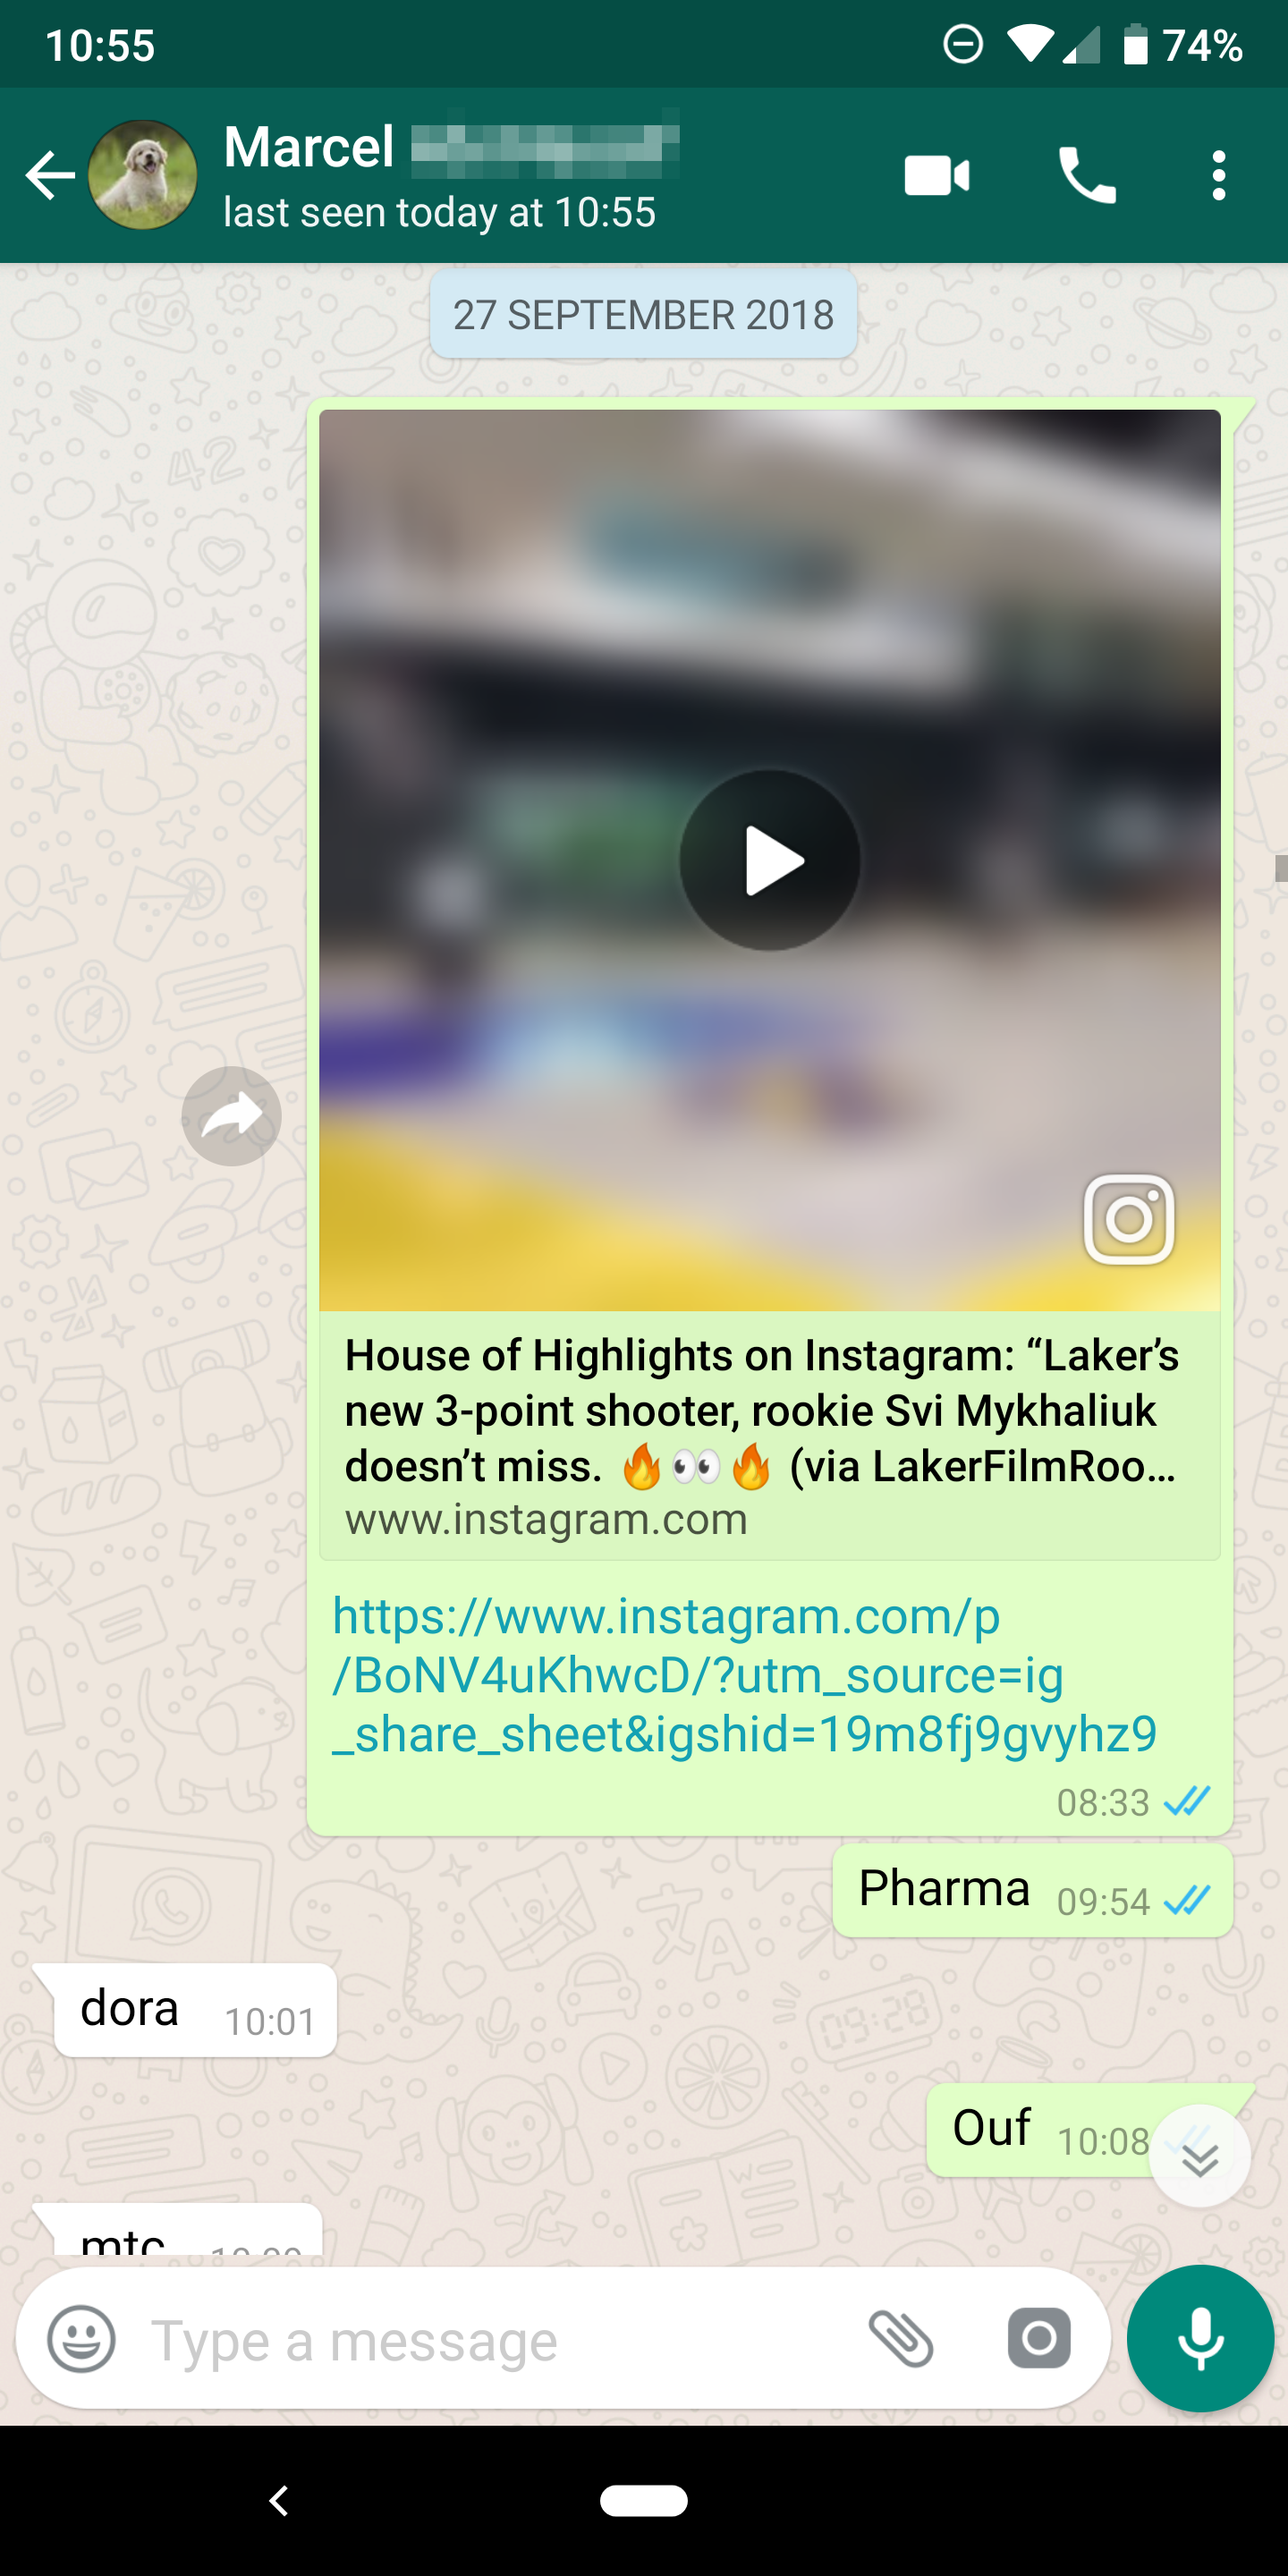 WhatsApp Beta 2.18.301 brings picture-in-picture video ...